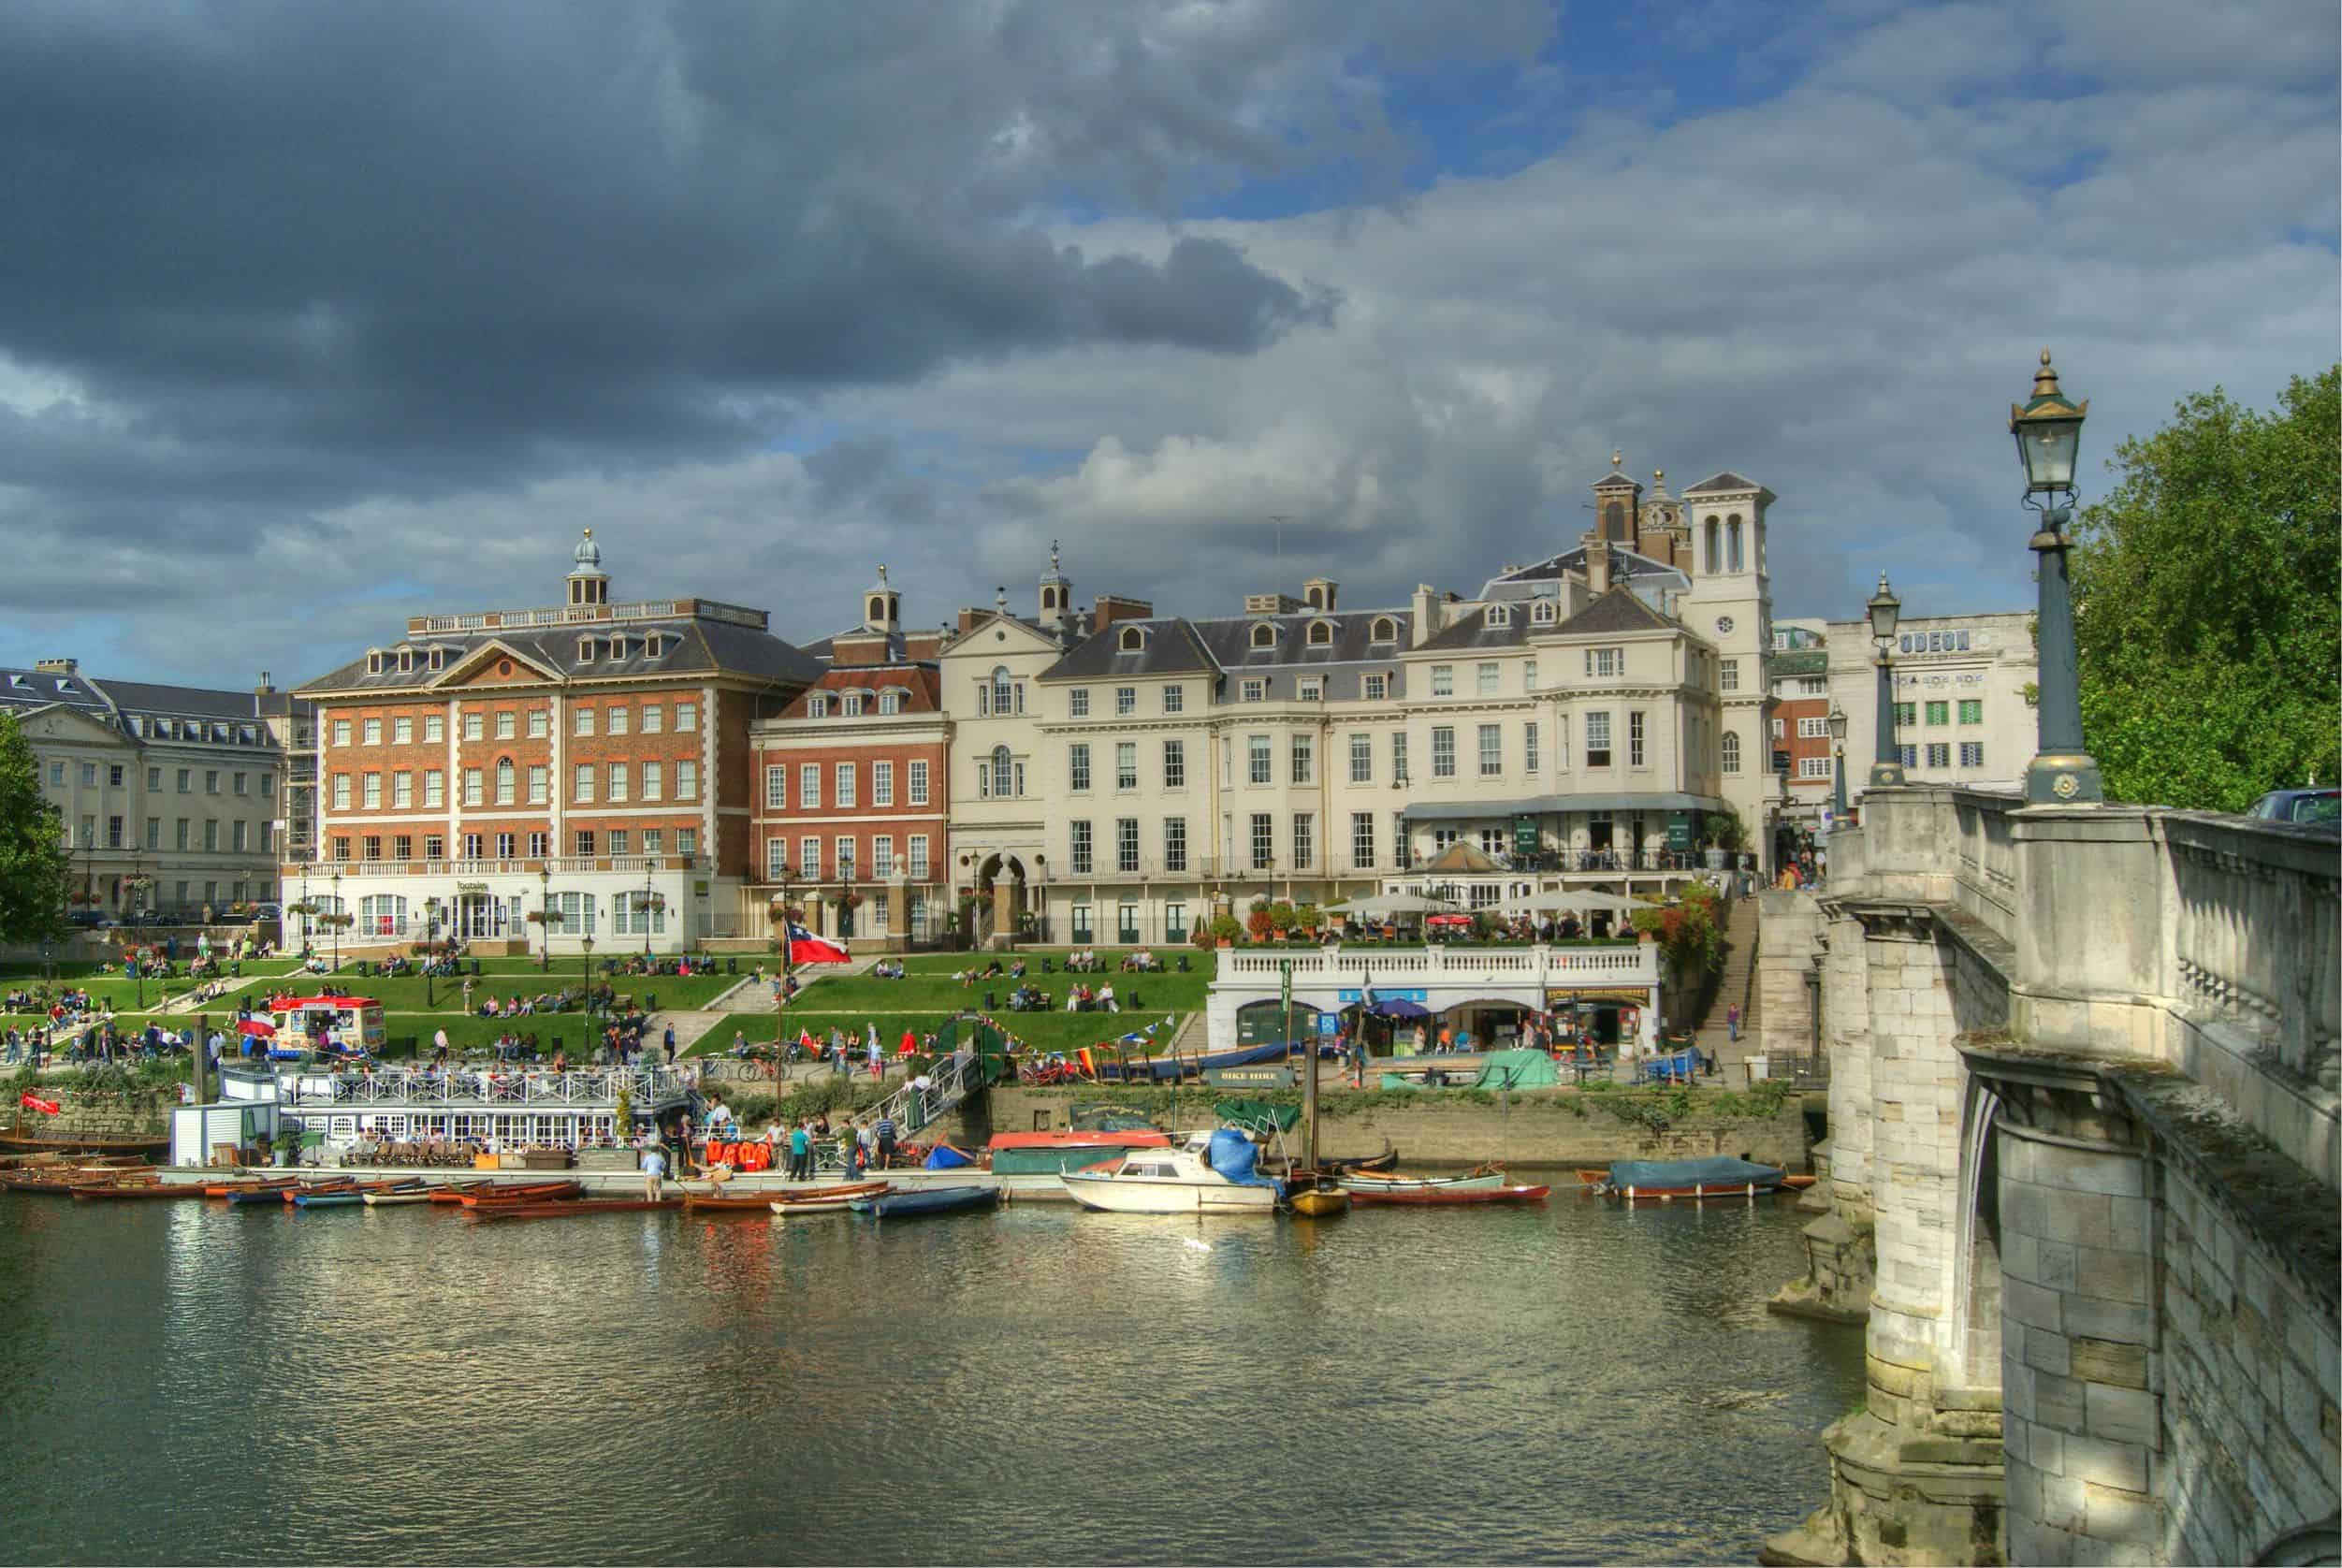 Richmond Riverside, Richmond-upon-Thames, England